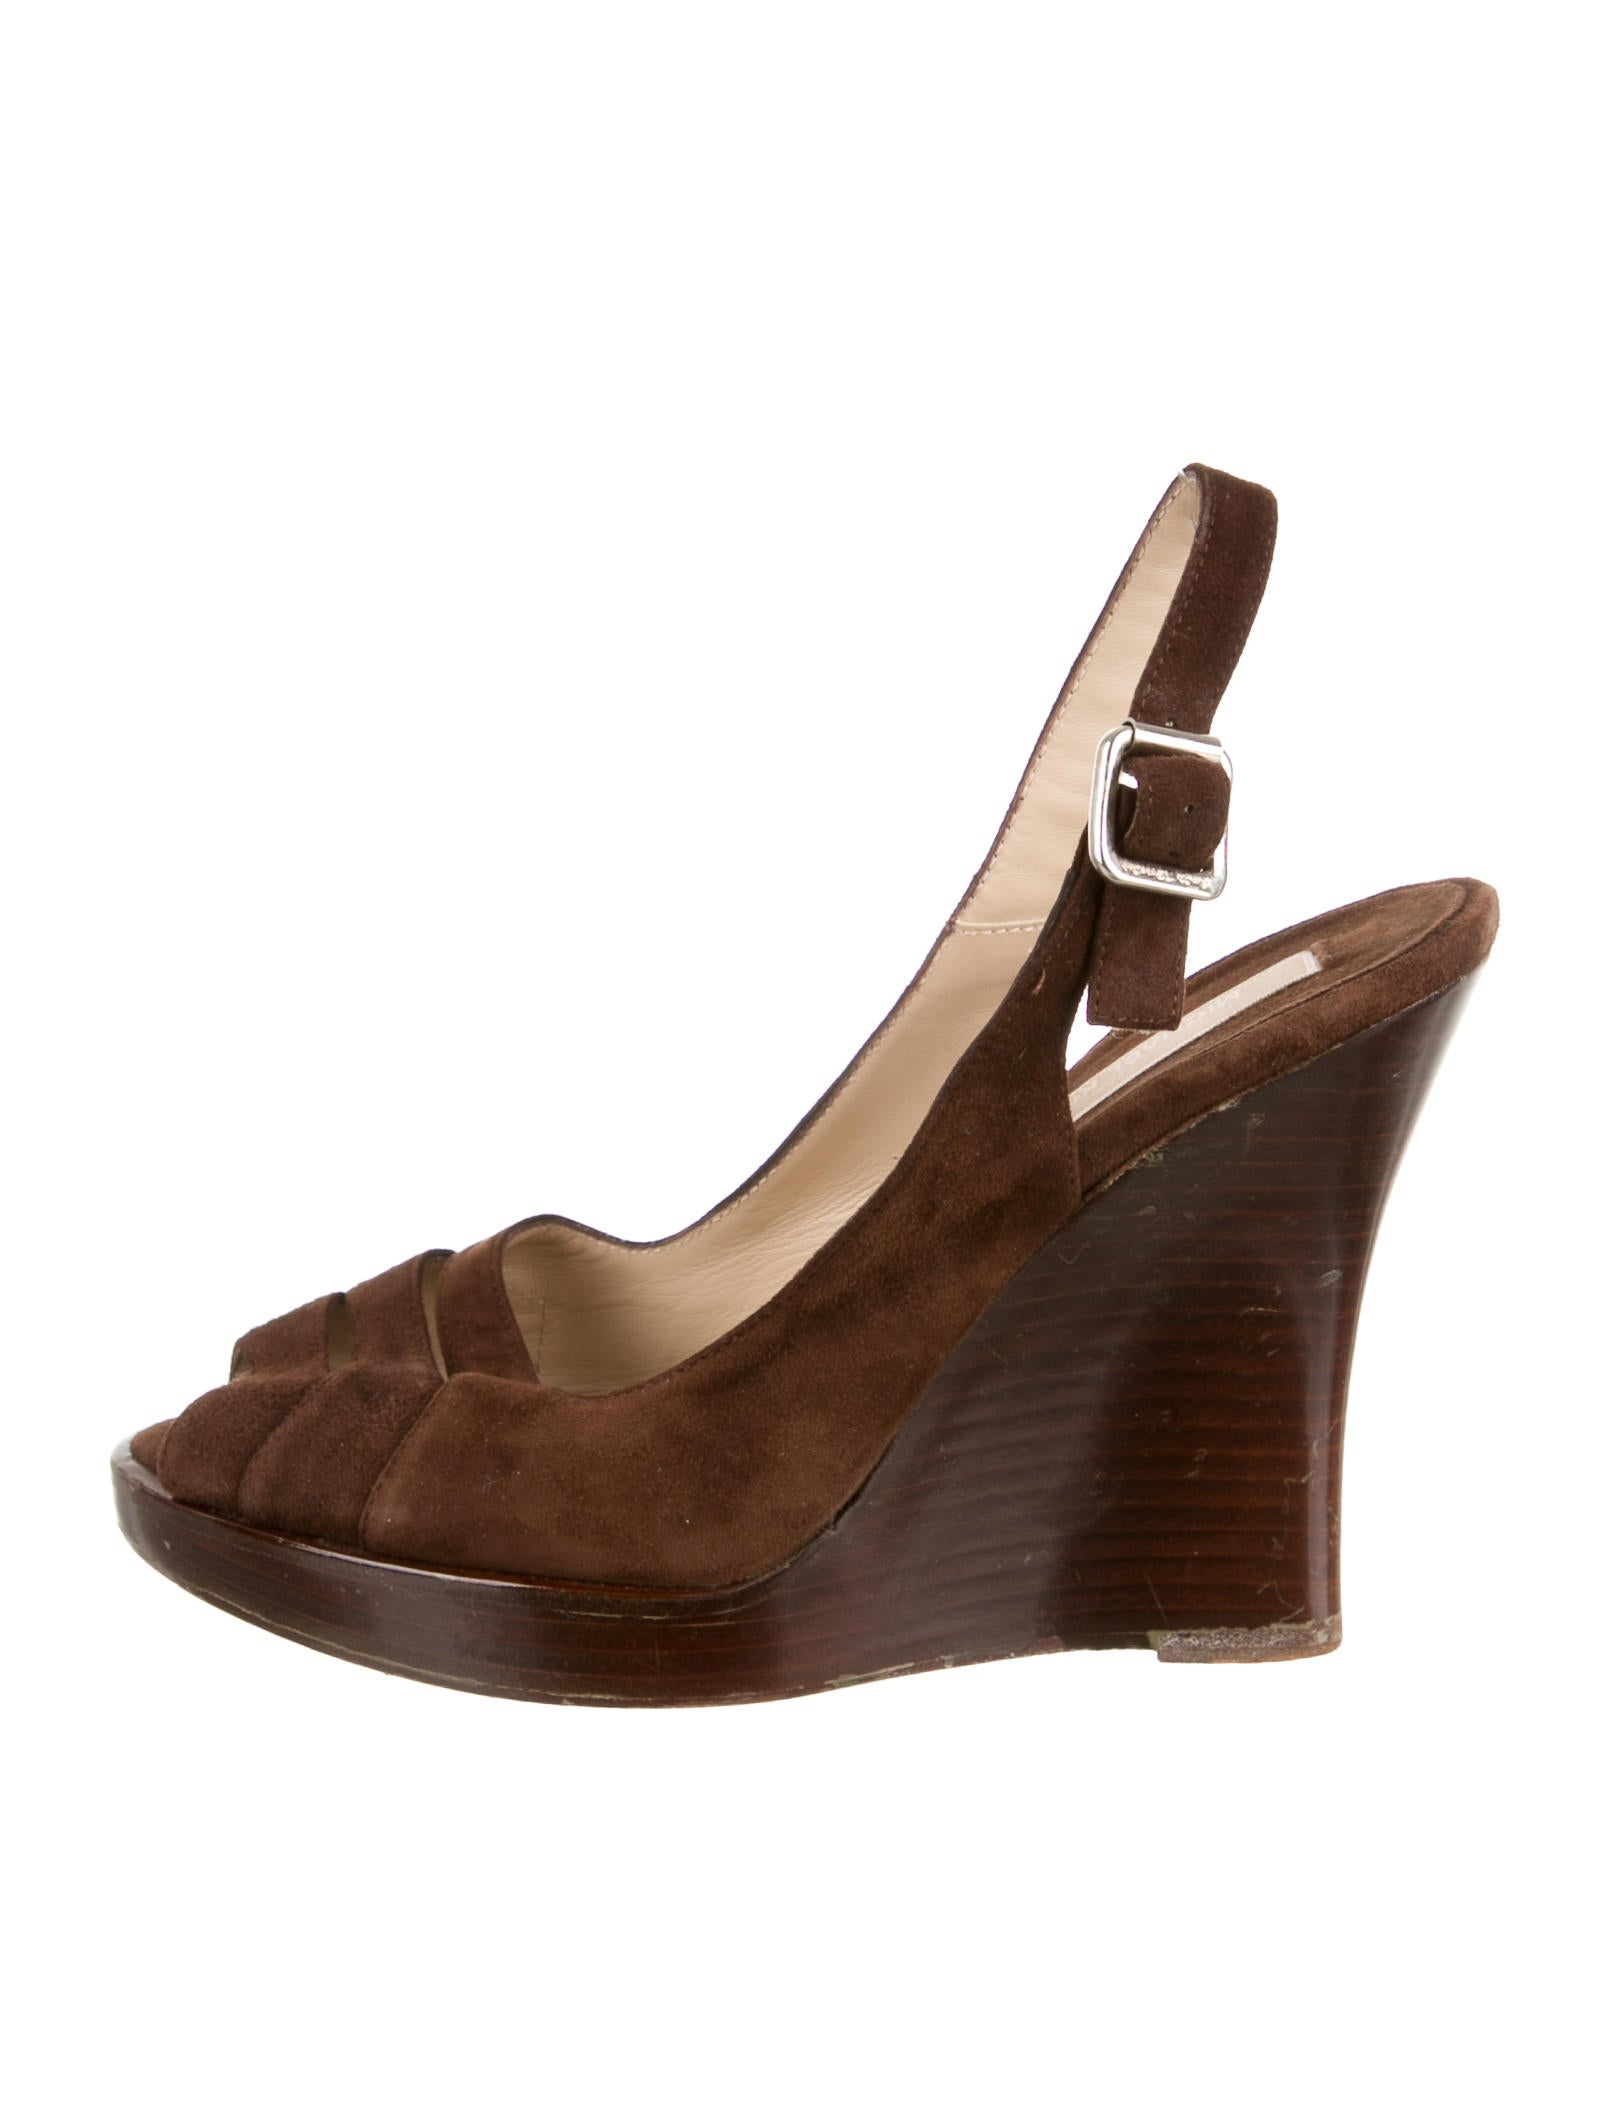 michael kors suede wedge sandals shoes mic37432 the